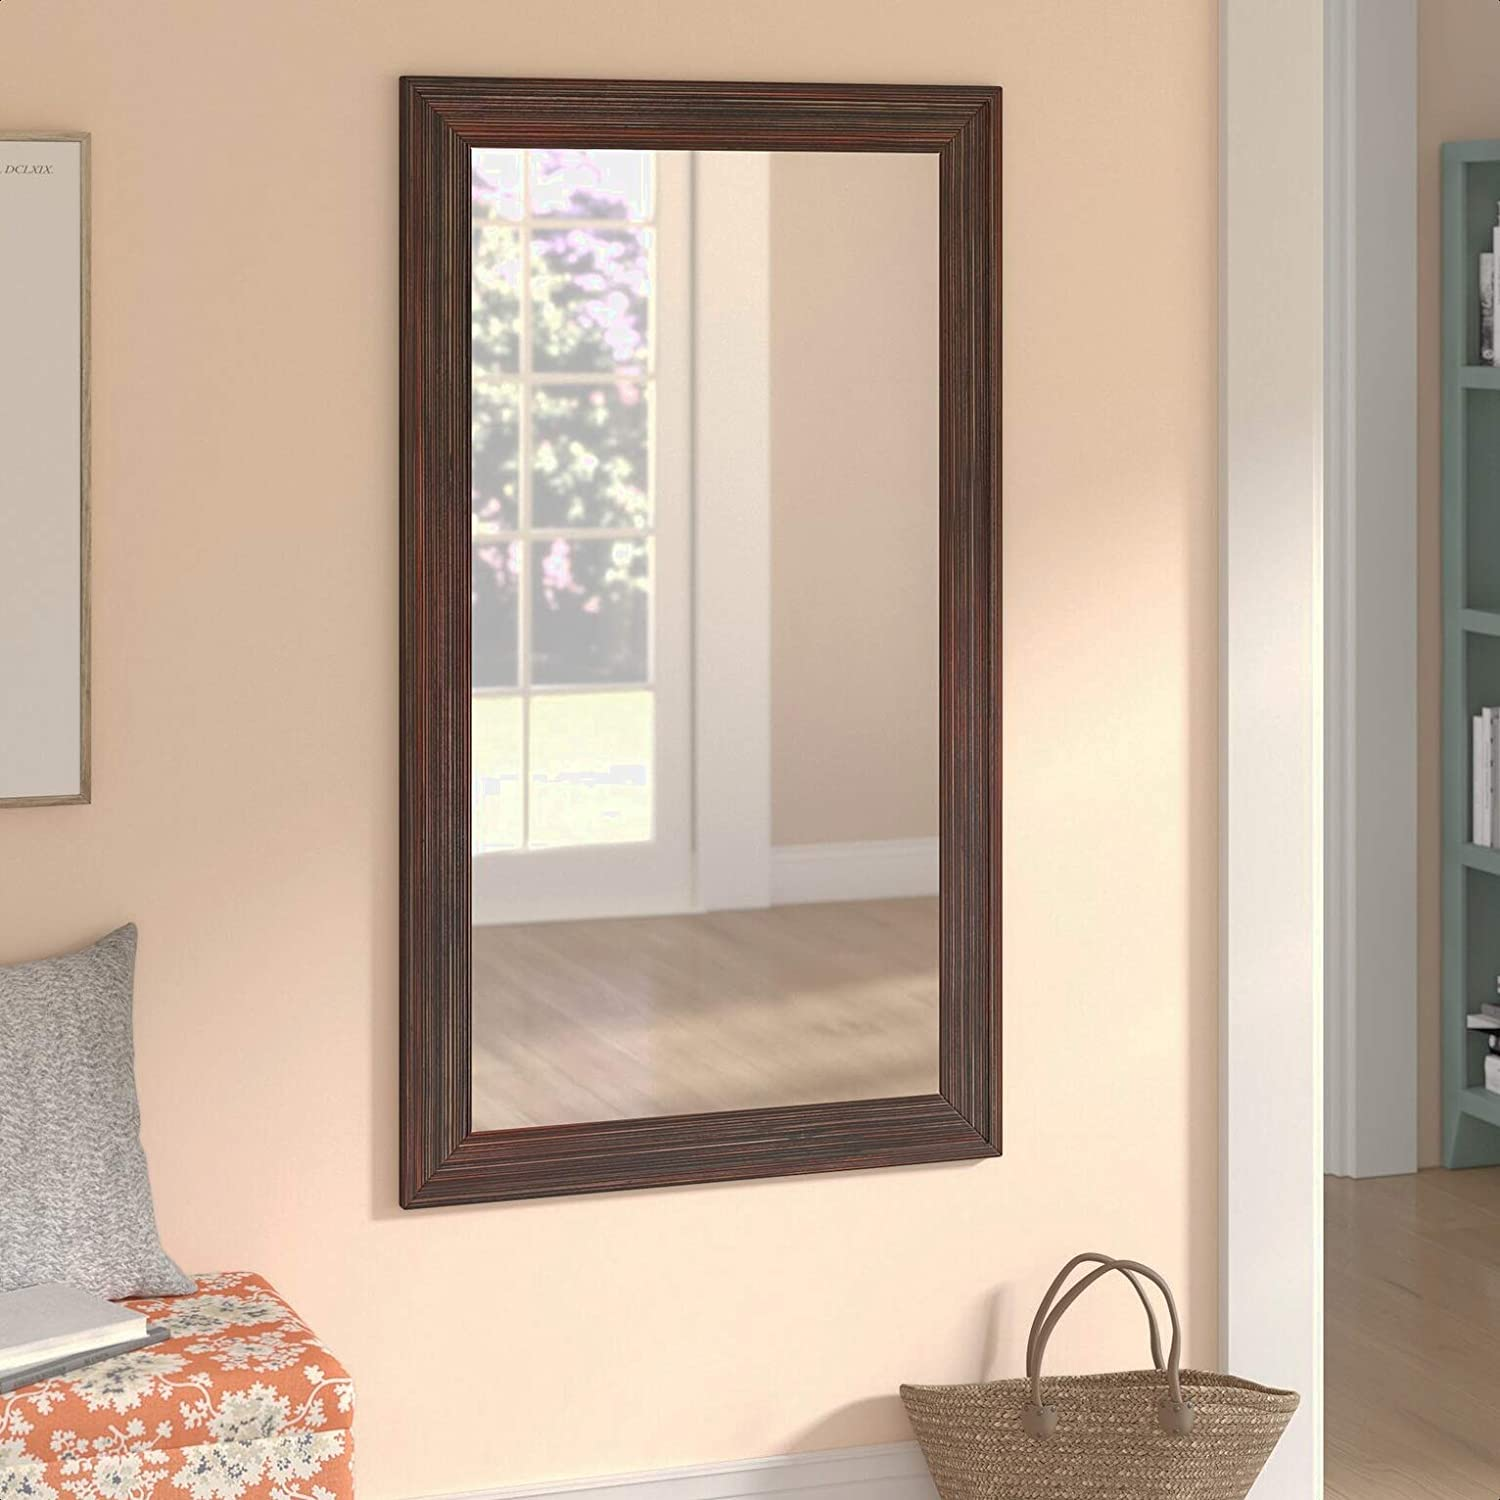 Indefinitely Adeel outlet Modern Contemporary Venetian Overall: 0.7 Mirror Accent